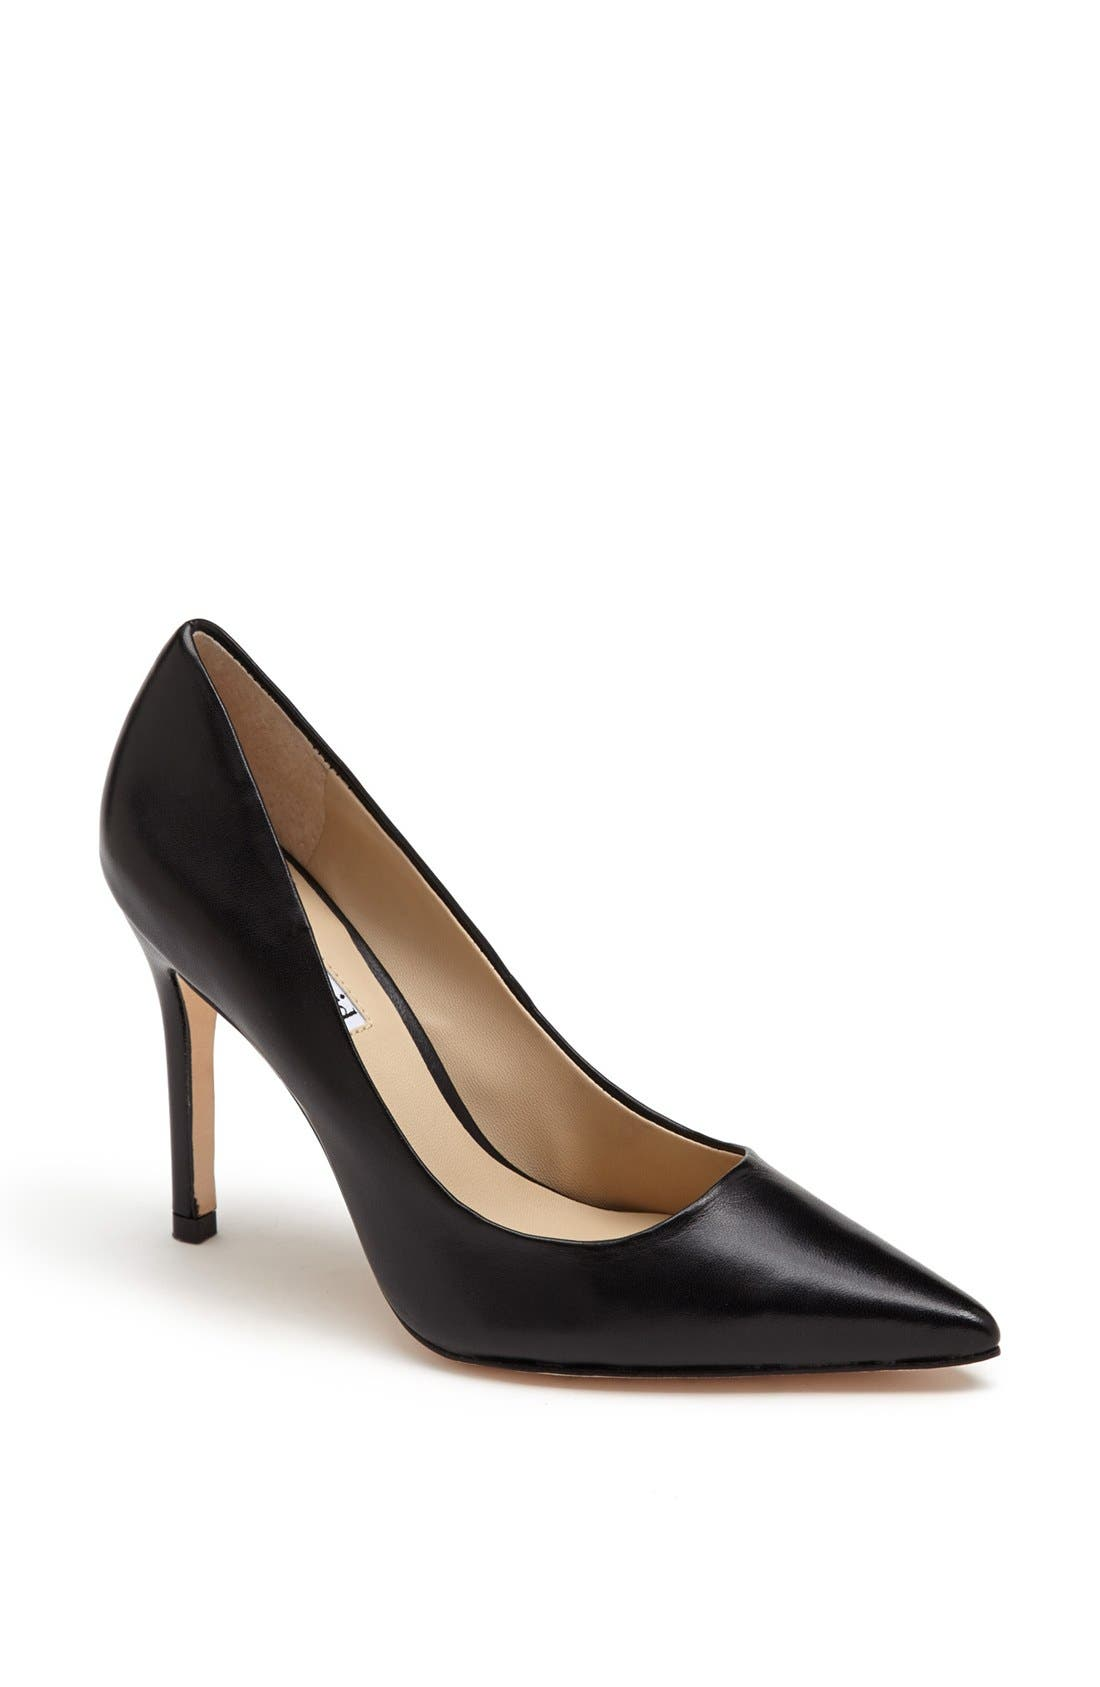 Alternate Image 1 Selected - Charles David 'Katya' Leather Pump